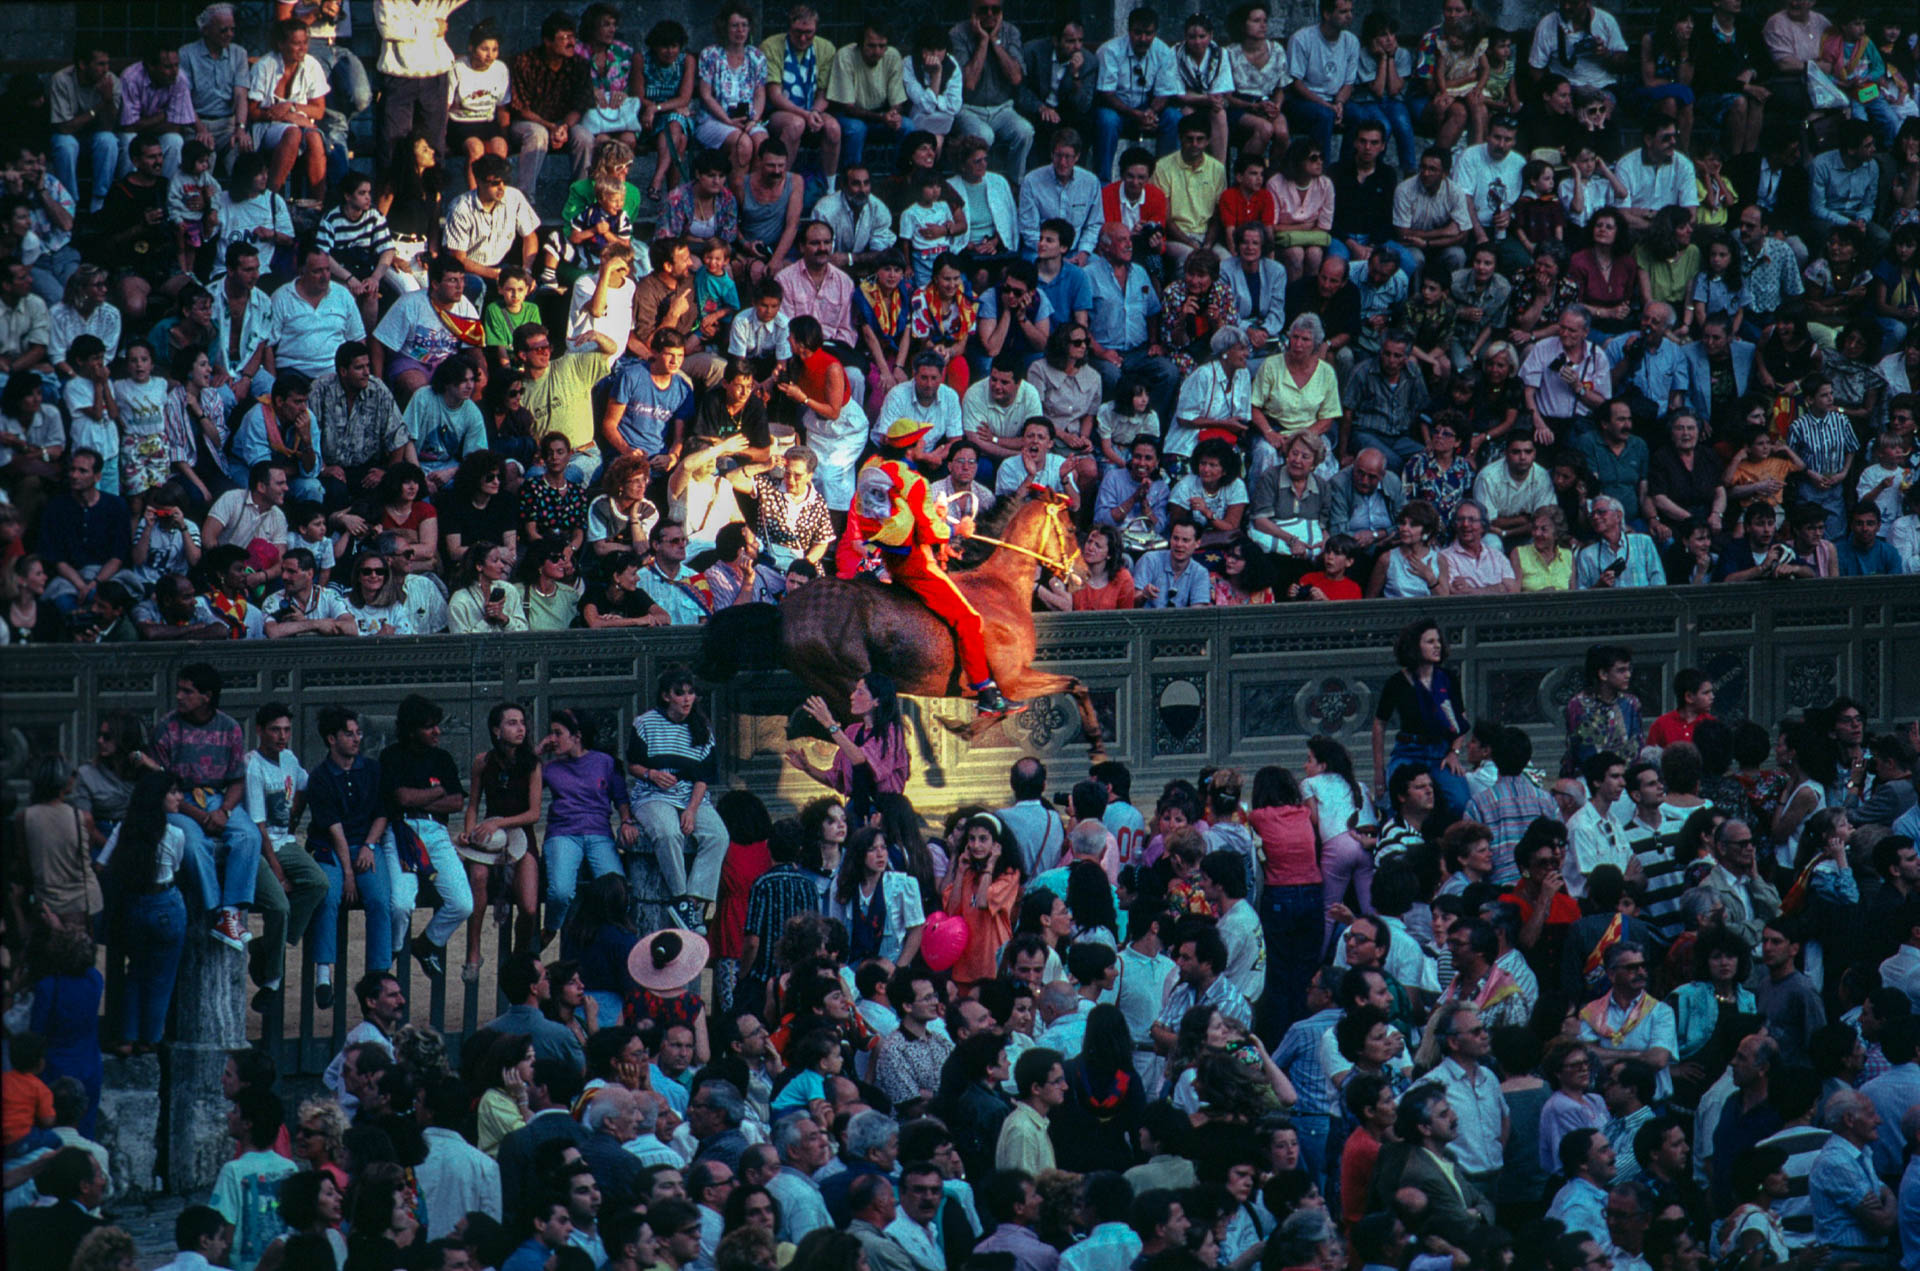 Siena, 1 July 1991 During the final trials, a jockey rides among the crowd waiting for the start of the Palio.